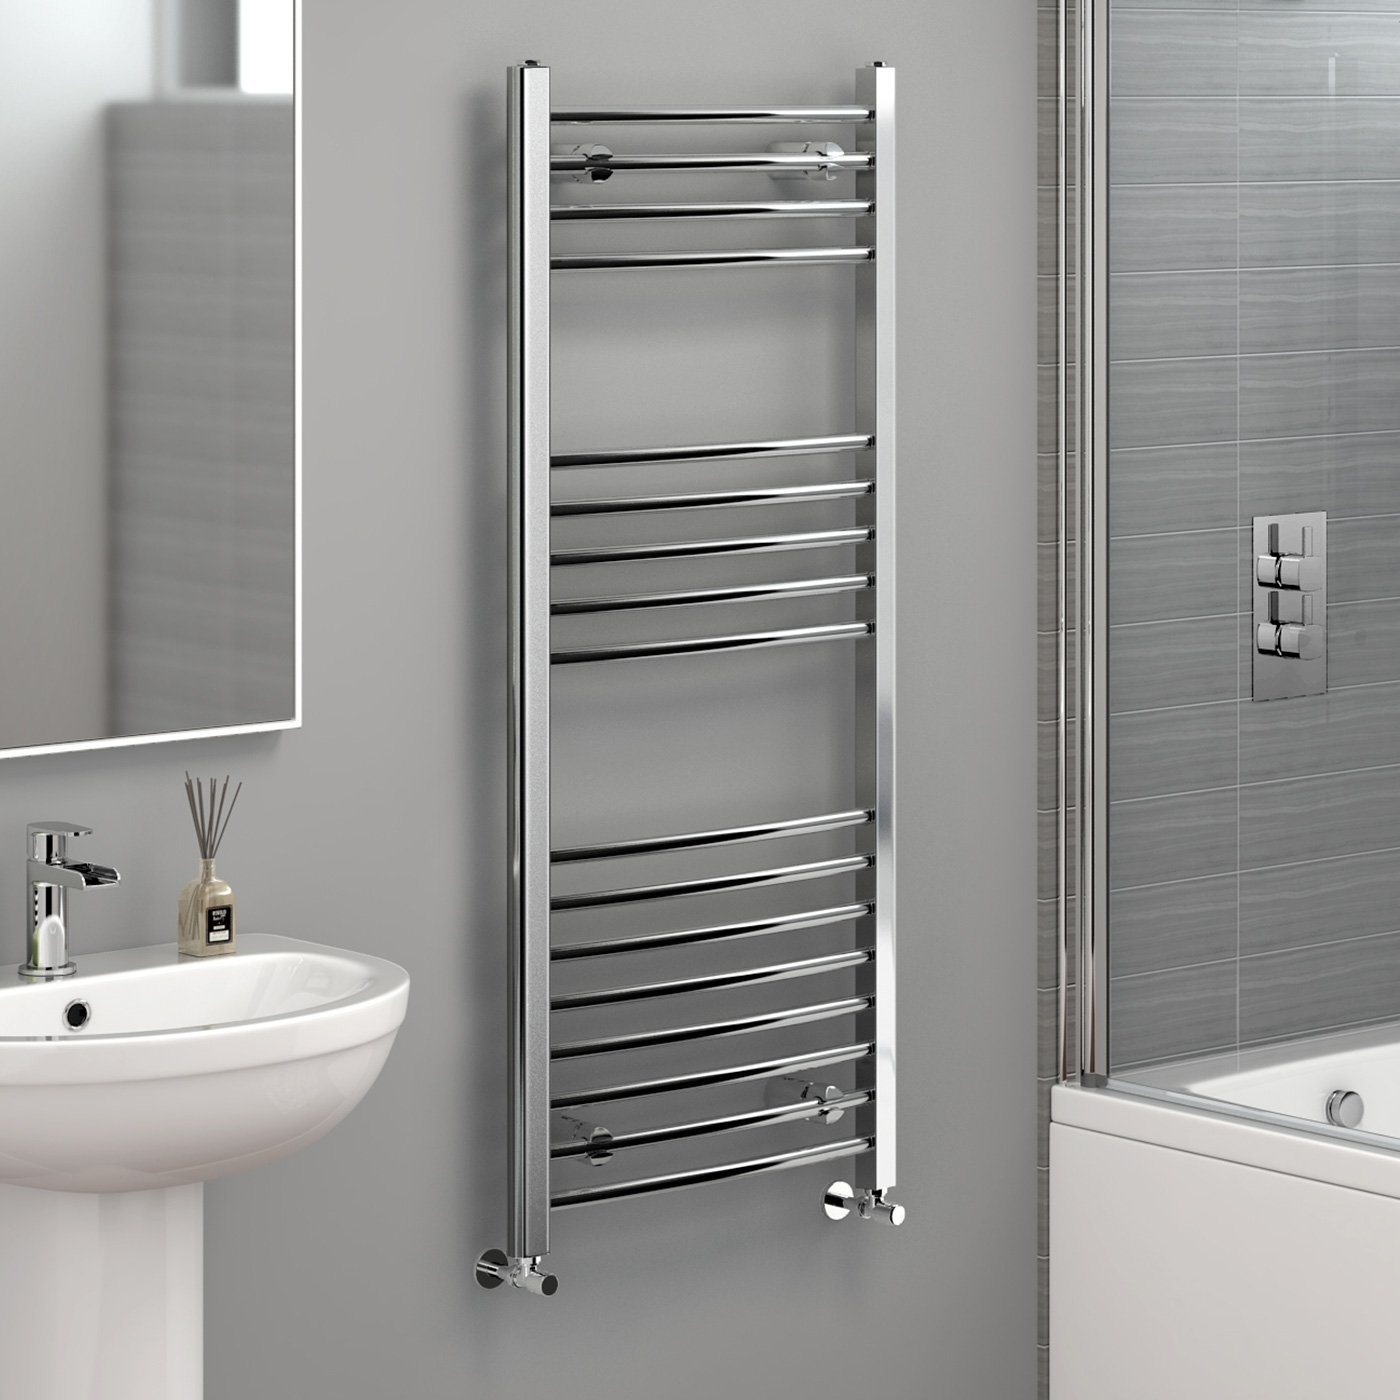 Heated Towel Rail in Chrome 1200x500mm